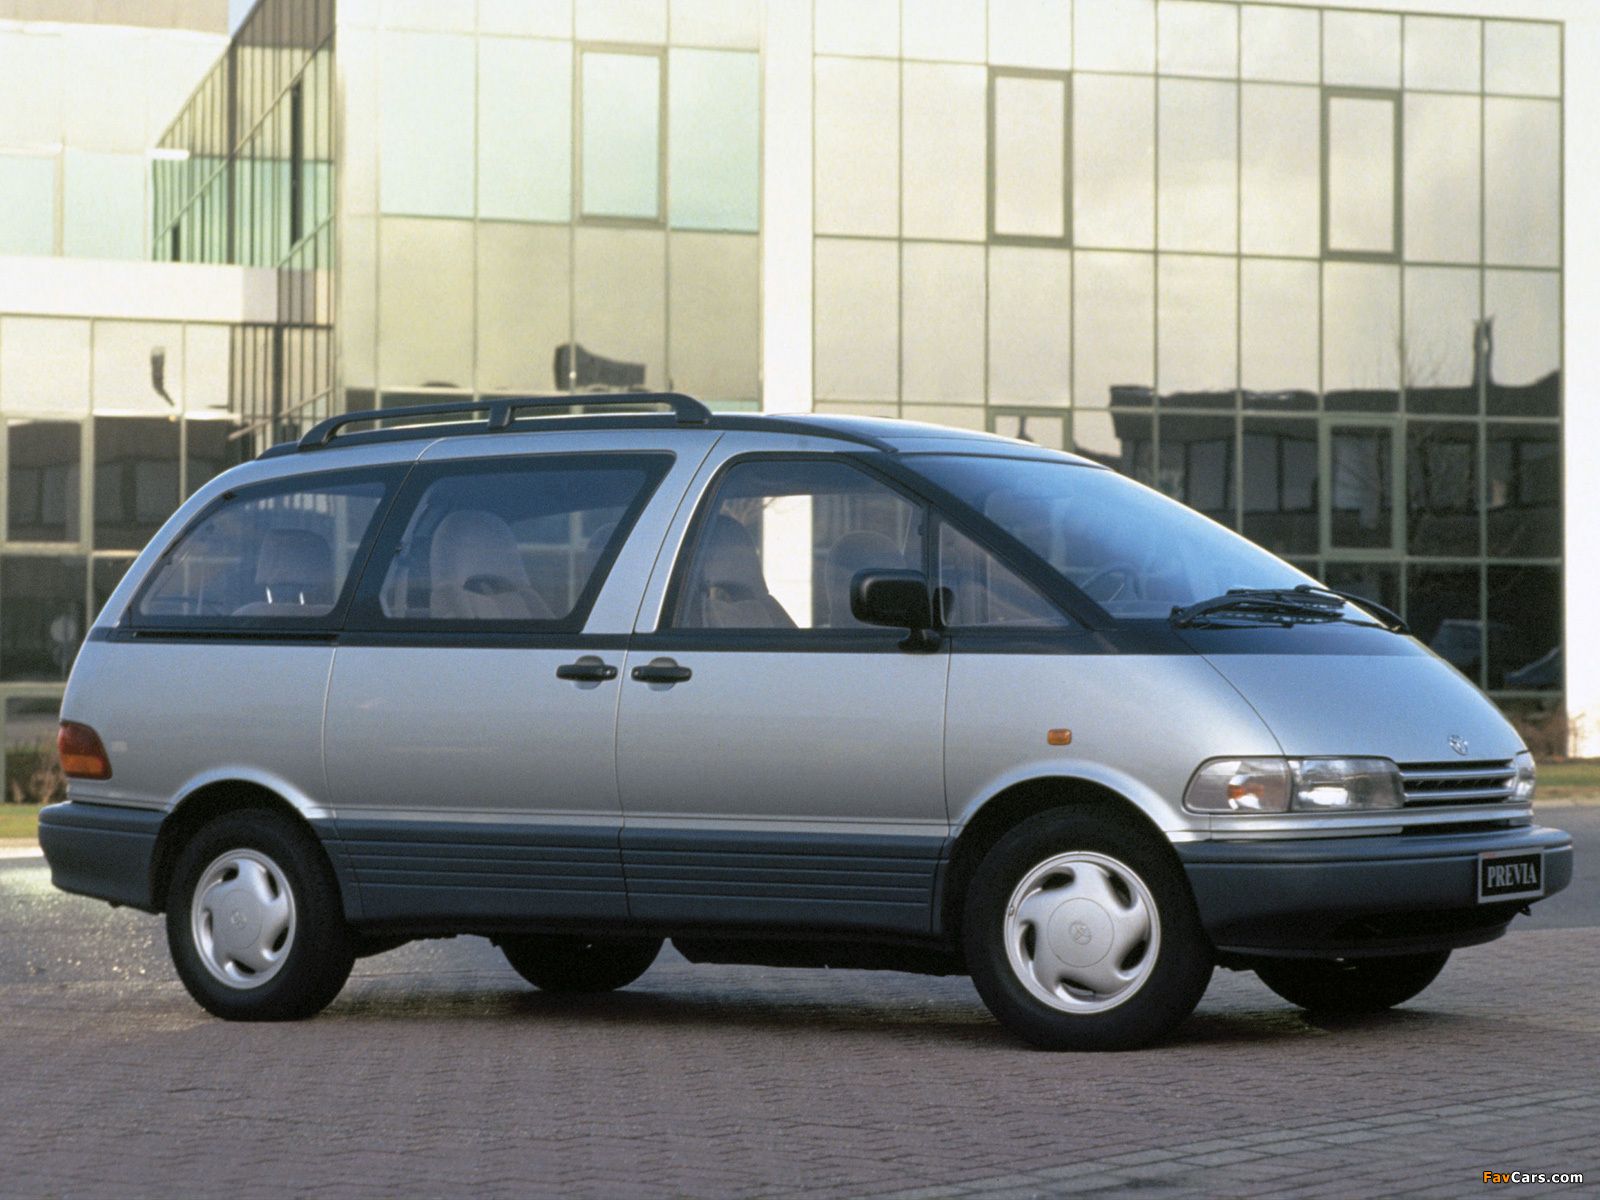 Toyota Previa 1990 2000 Wallpapers 1600x1200